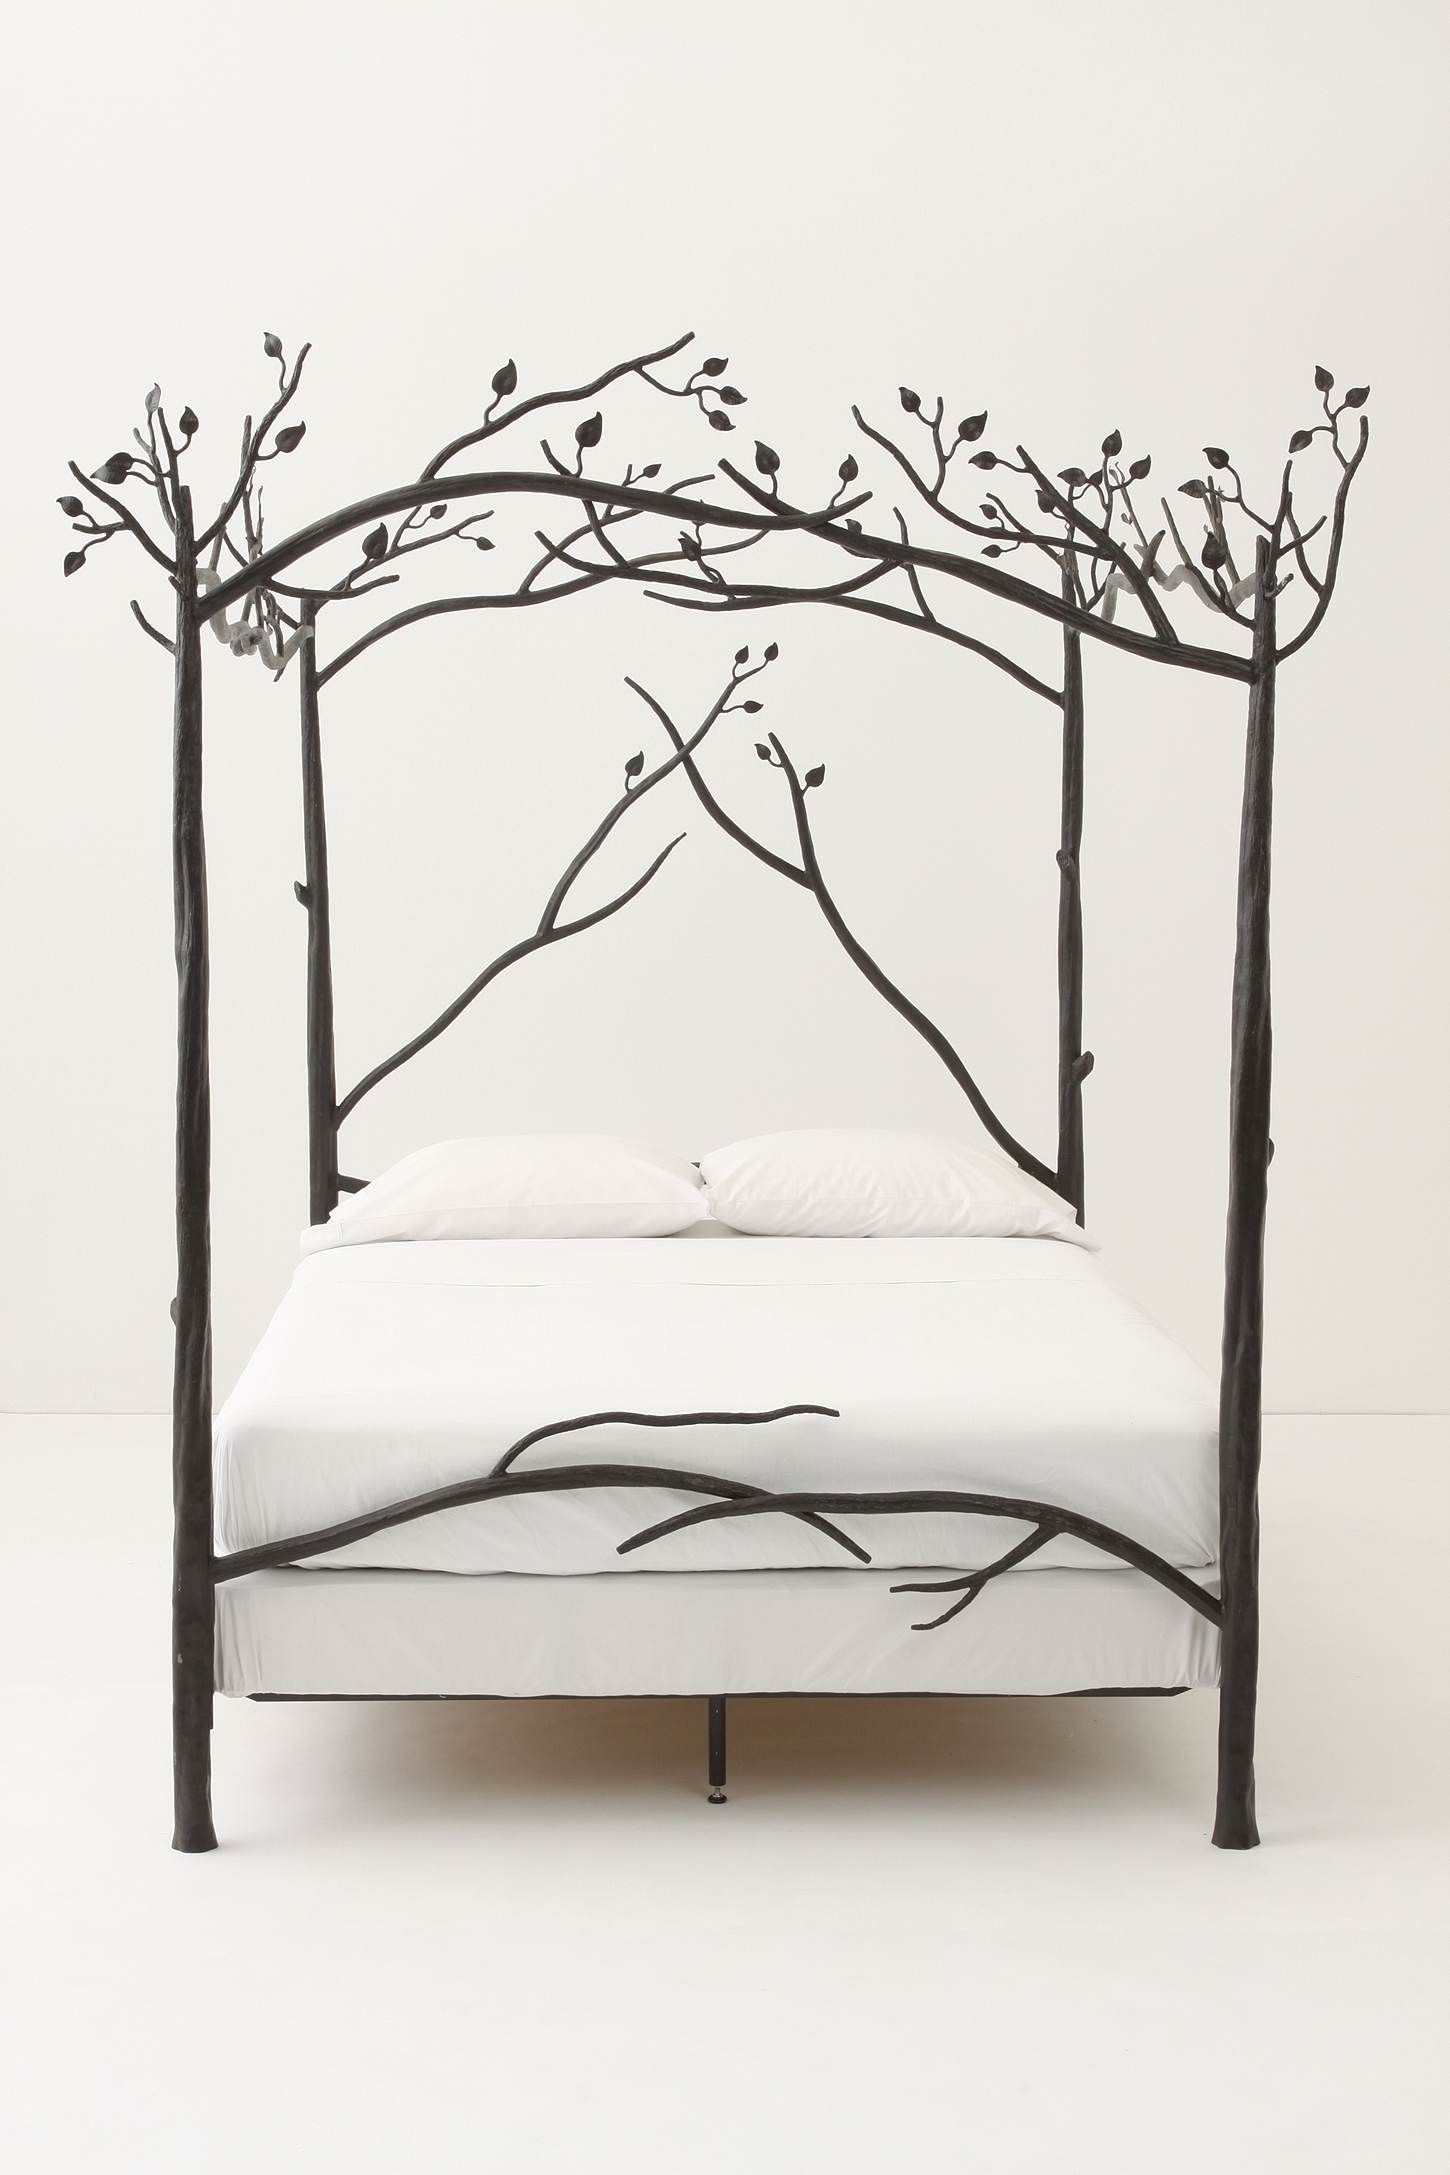 Forest Canopy Bed Products I Love Bed Bedroom Bed Frame